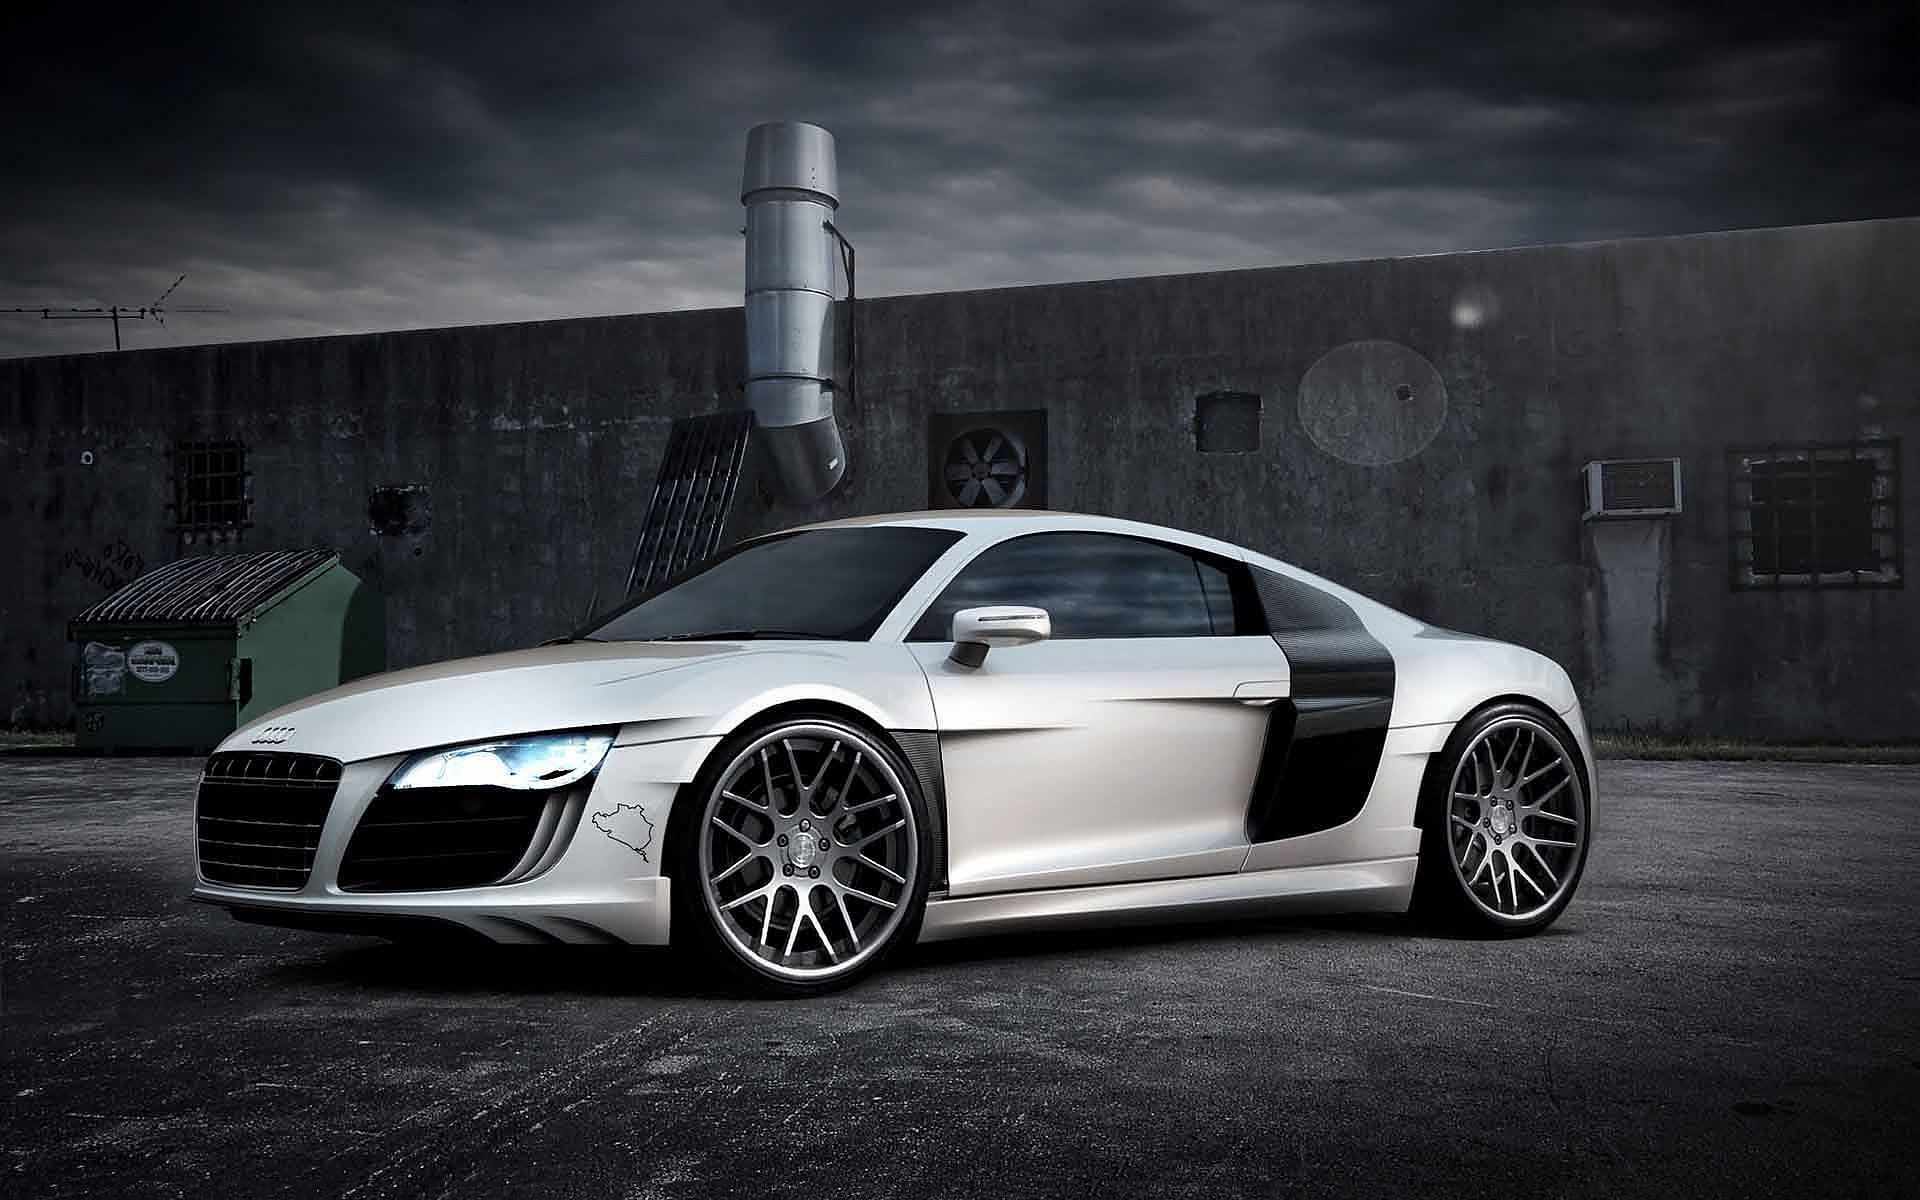 Cars Audi Roads R8 White V10 Wallpaper Allwallpaper In: Audi R8 Desktop Wallpaper 06